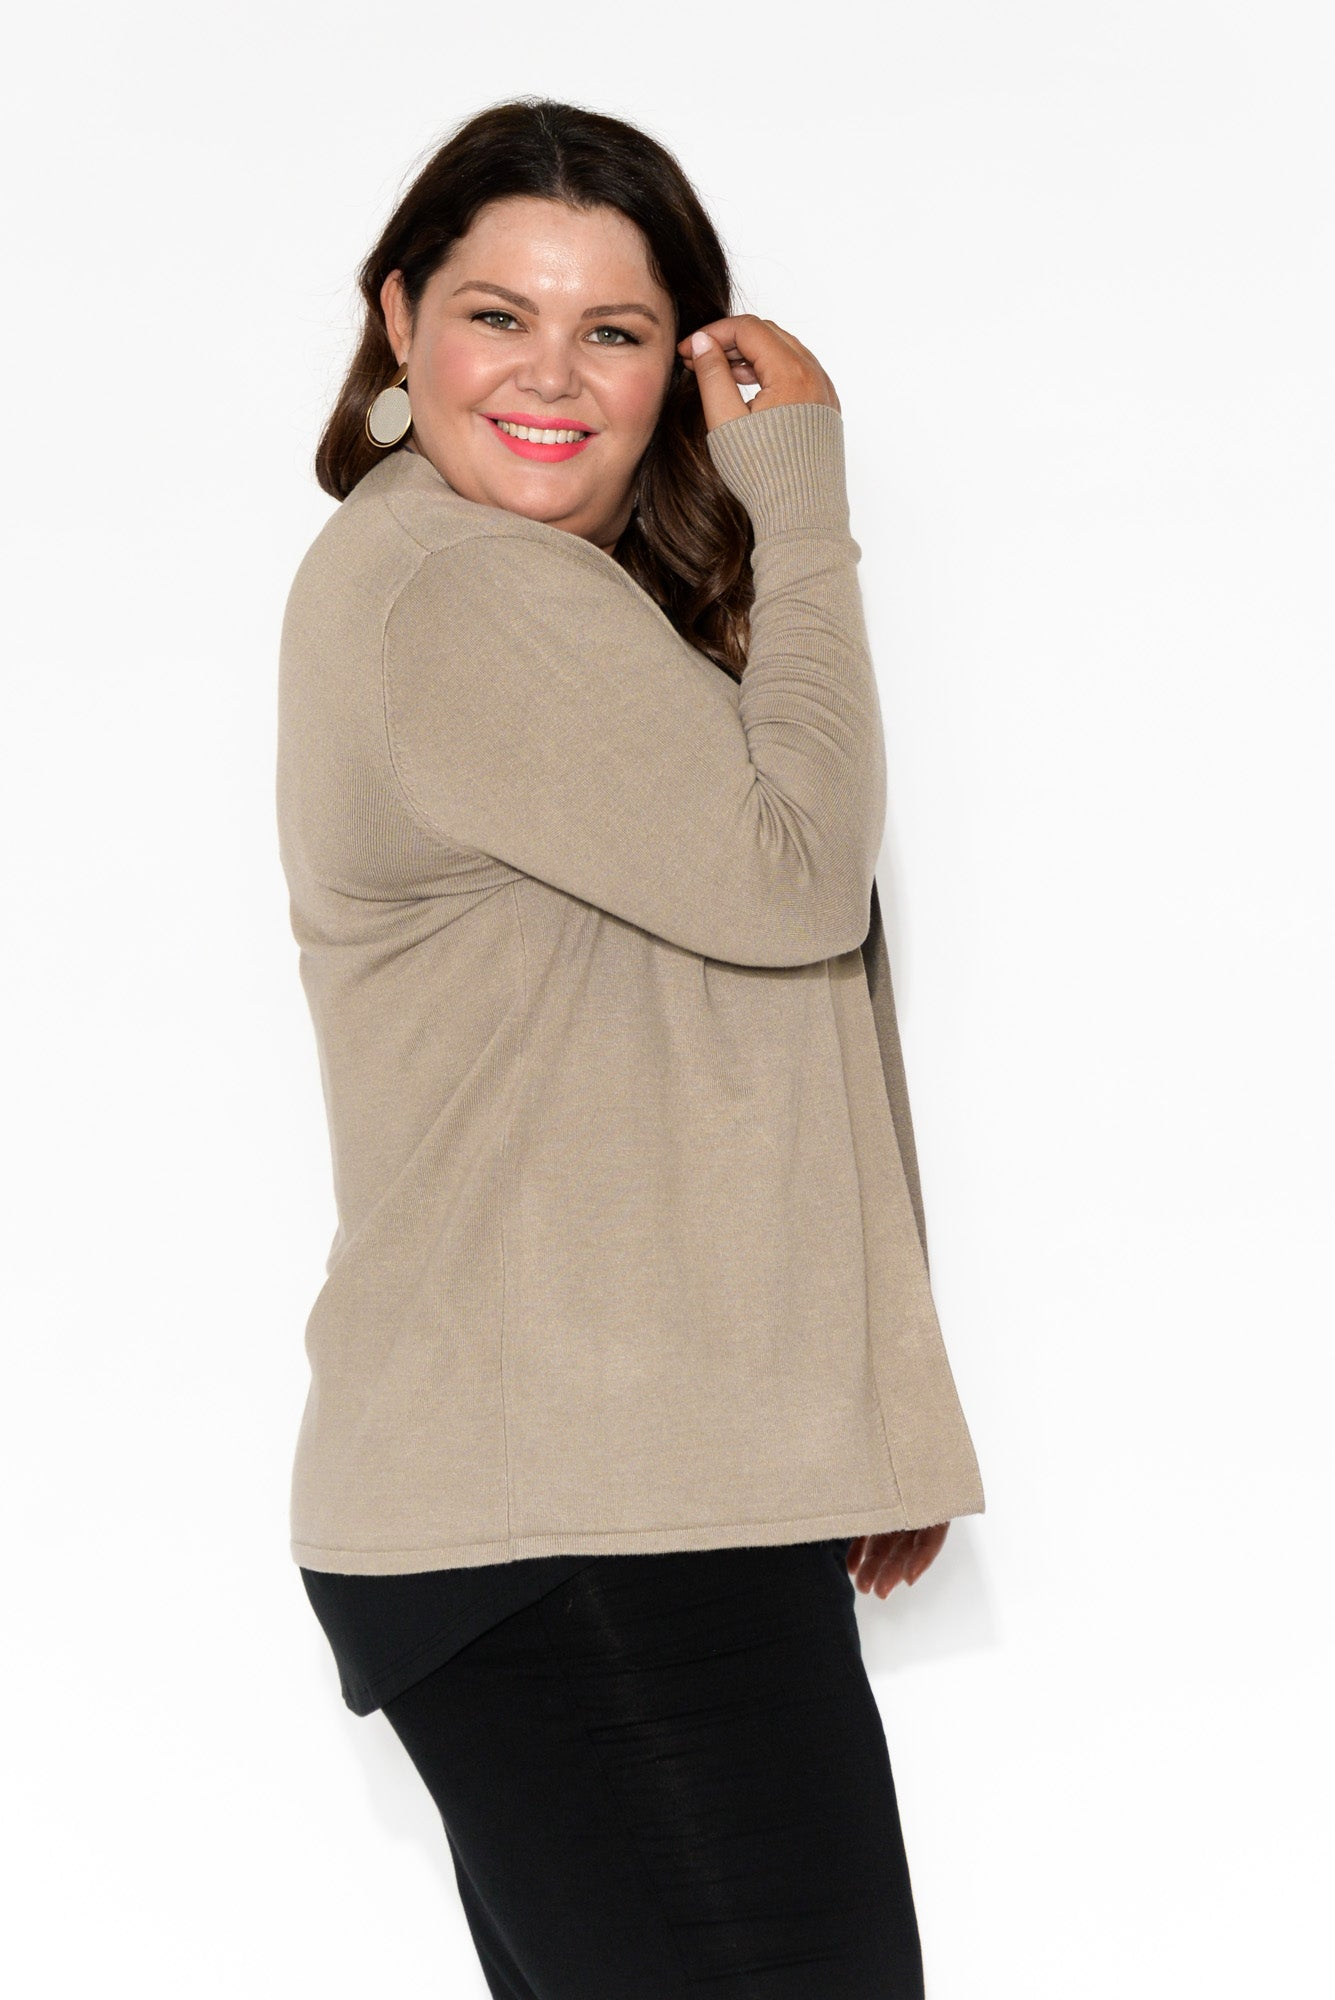 Caitlin Mocha Brown Cardigan